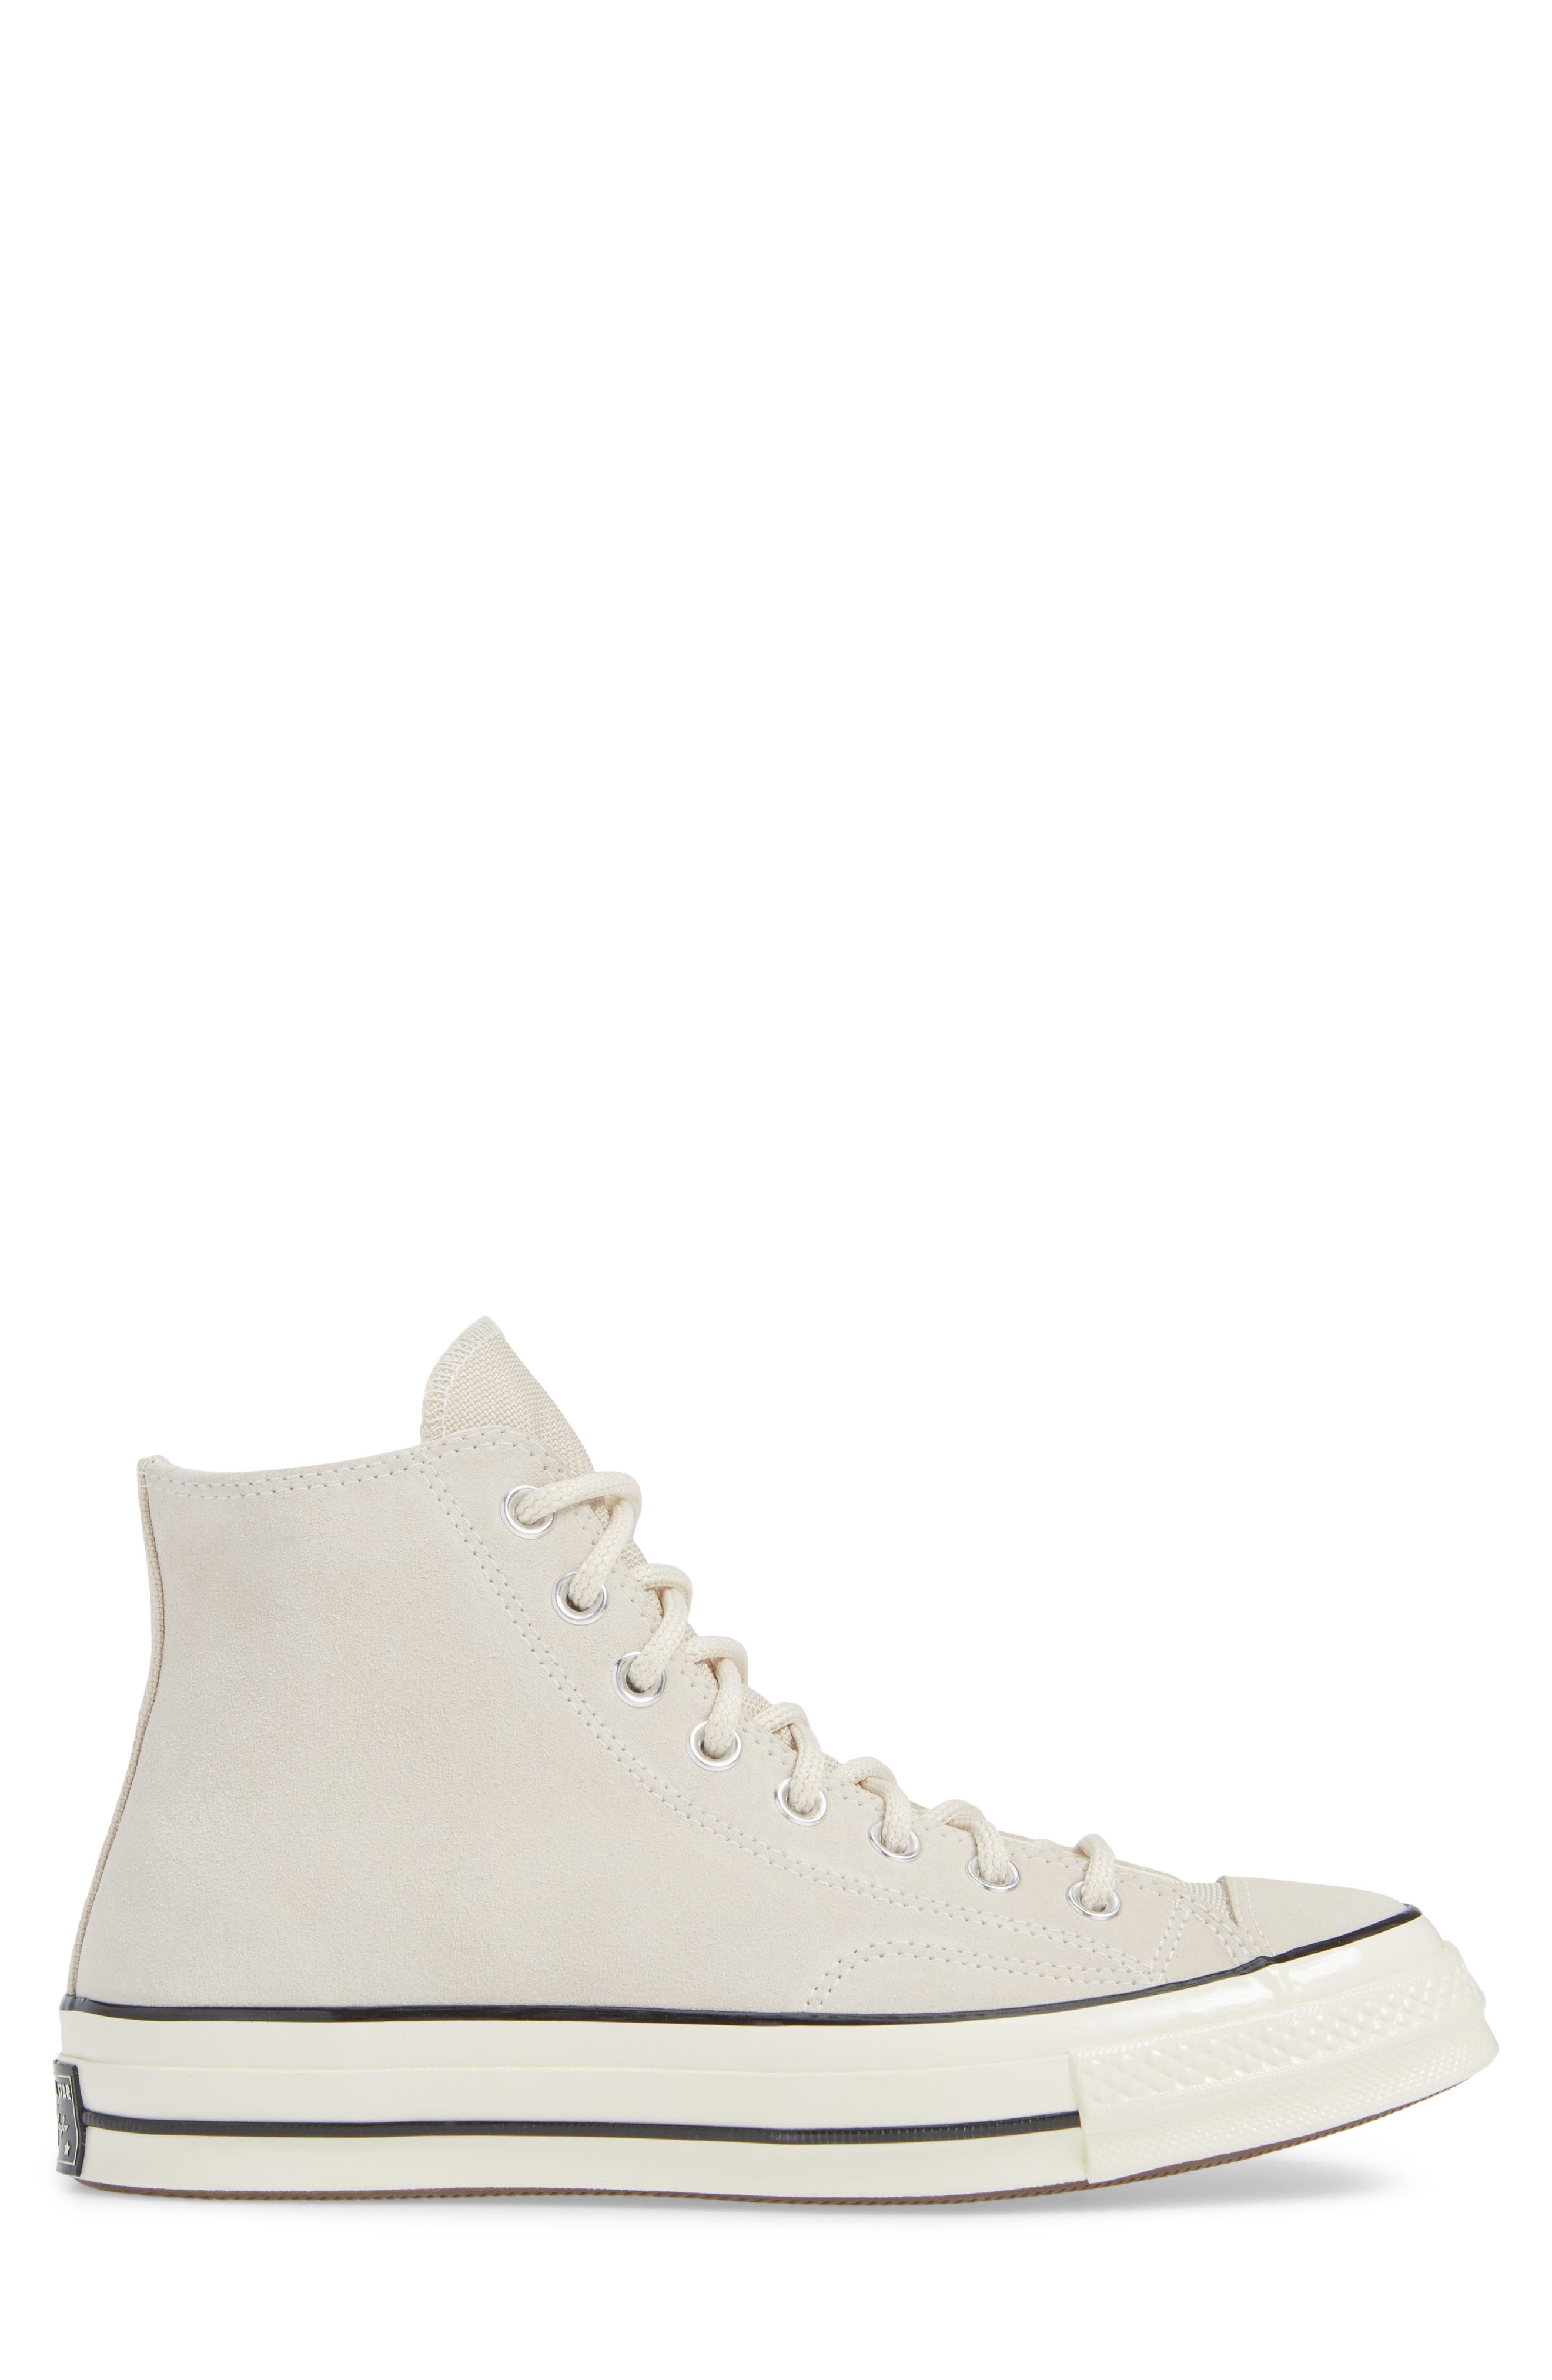 Chuck Taylor<sup>®</sup> All Star<sup>®</sup> 70 Base Camp High Top Sneaker,                             Alternate thumbnail 3, color,                             NATURAL IVORY/BLACK